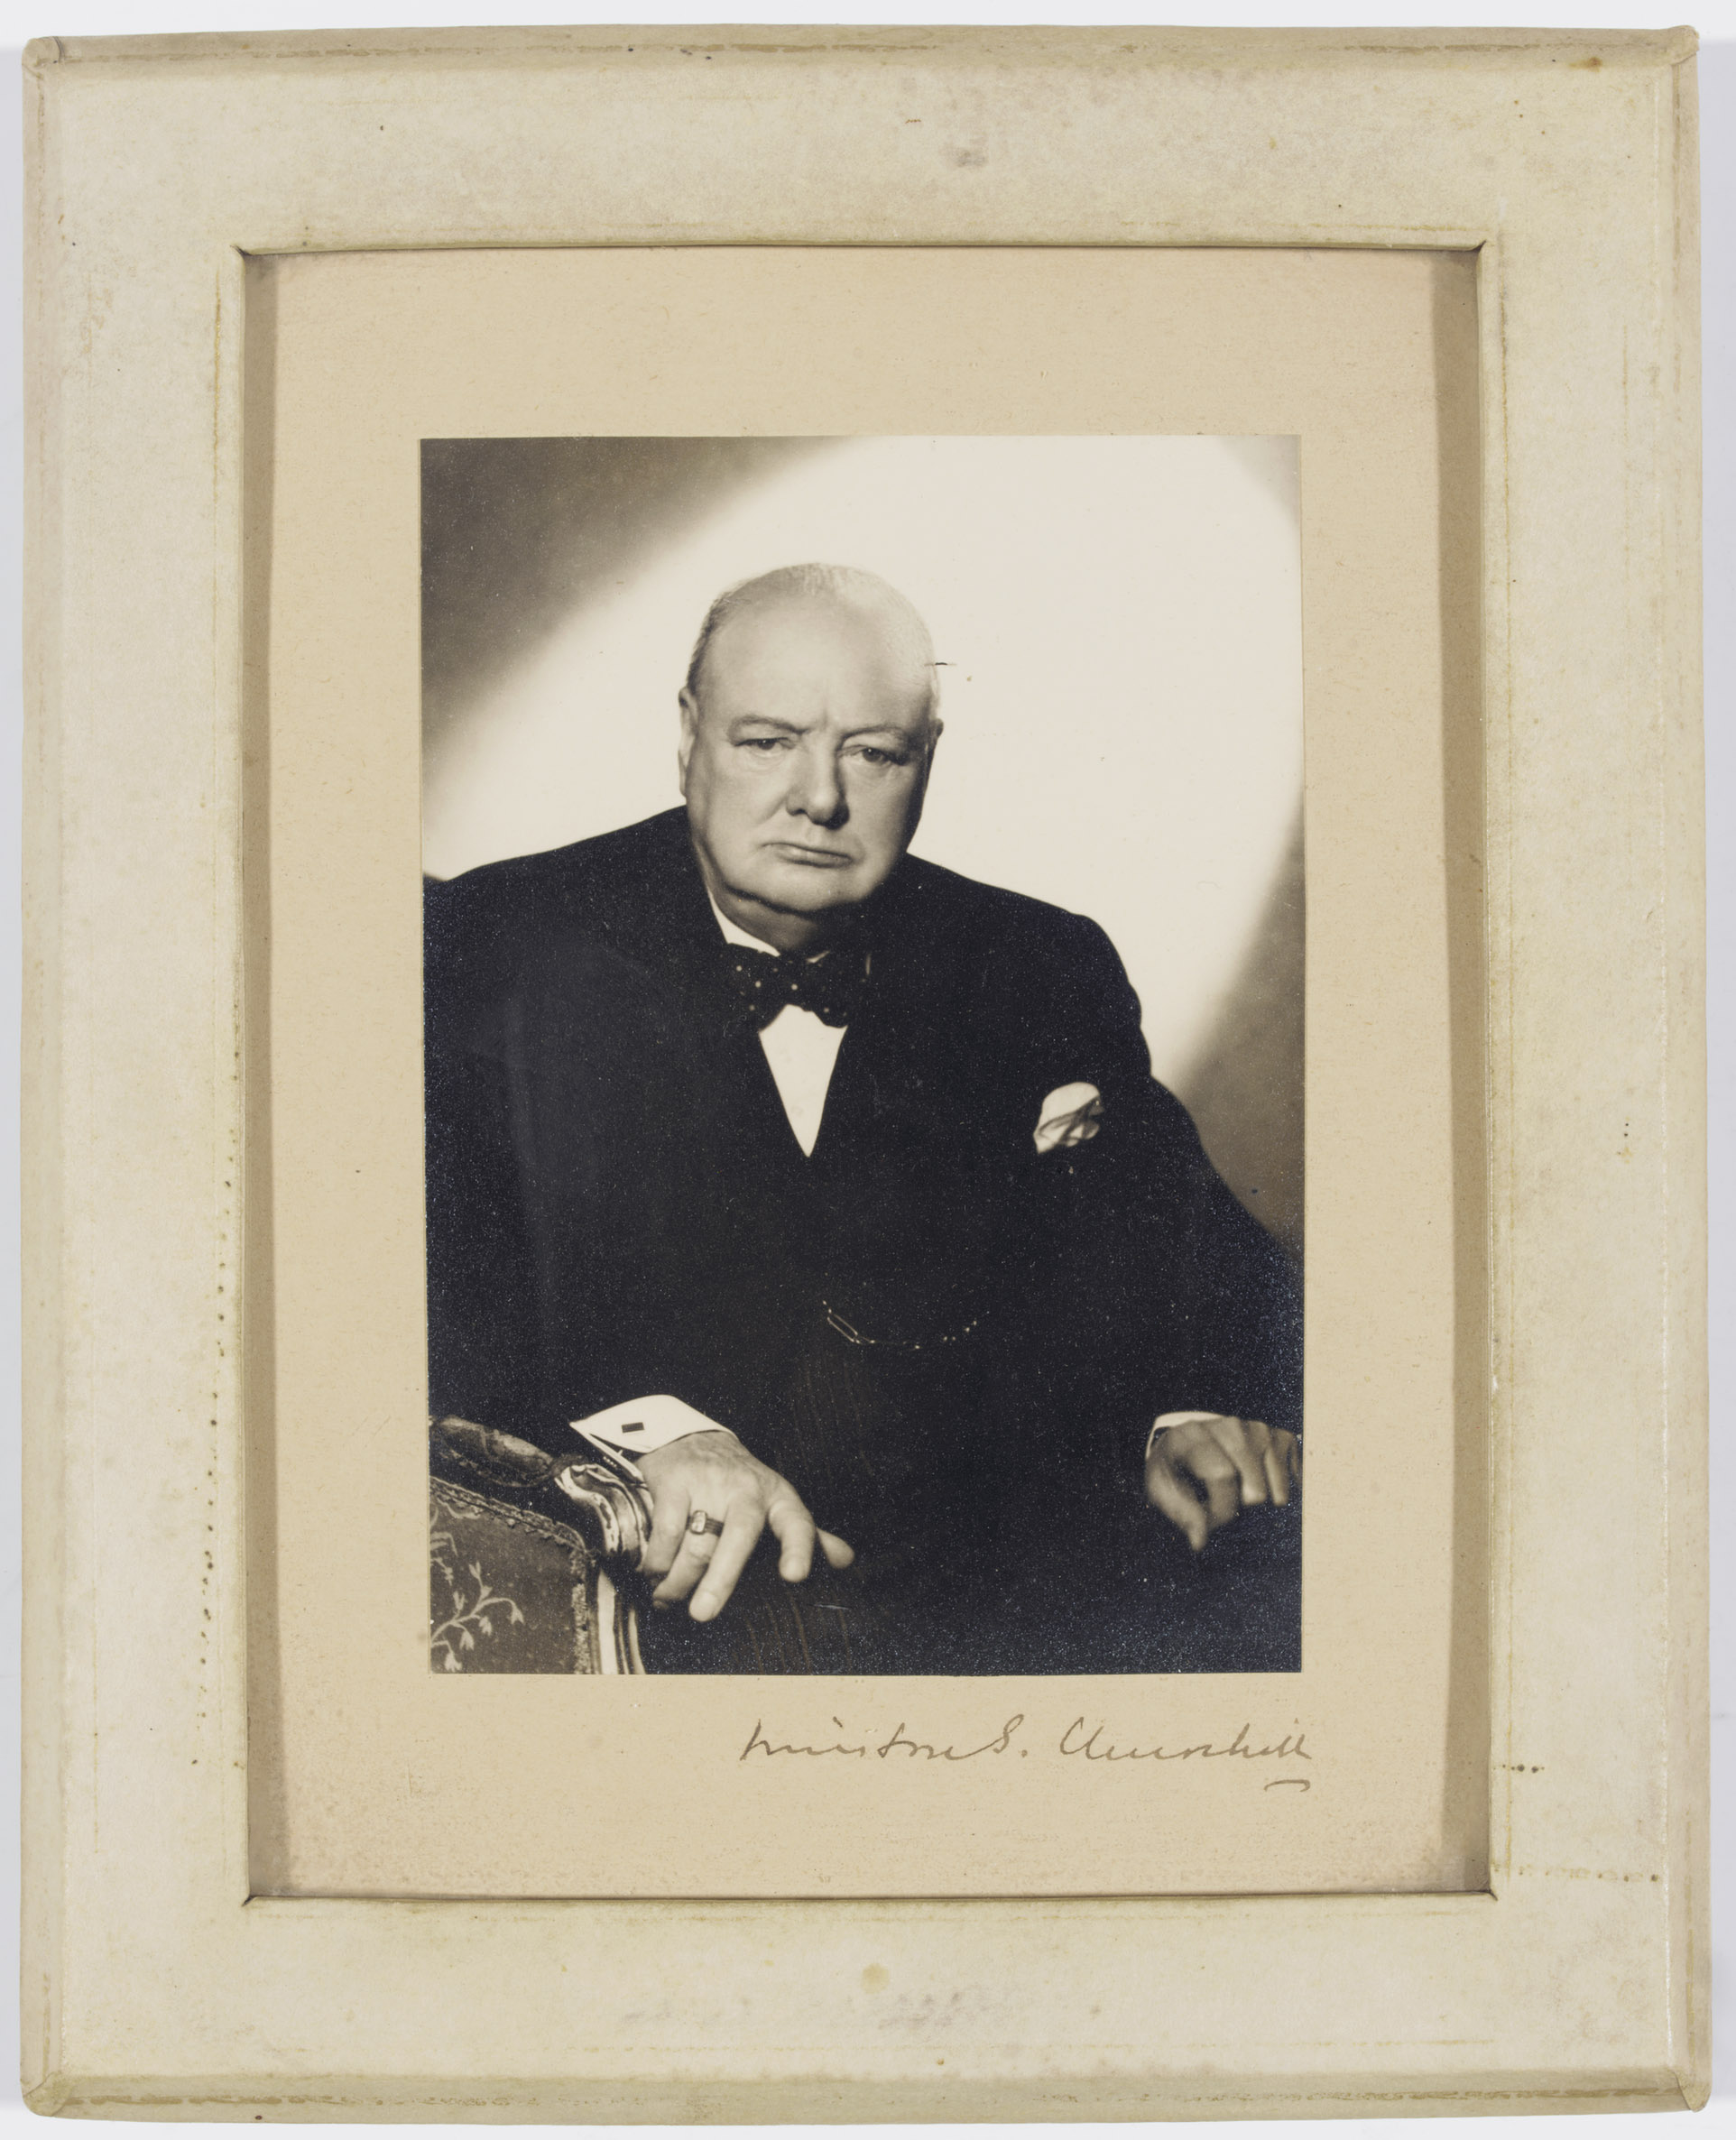 CHURCHILL, Winston S. (1874-1965). Photograph signed (on mount, 'Winston S. Churchill'), a half-length photograph [by Vivienne] showing Churchill seated, [c.1950], 152 x 108mm, laid down on card, 305 x 155mm, framed and glazed; with a photograph signed by Clementine CHURCHILL ('Clementine S. Churchill'), December 1953, 167 x 139mm, laid down on card, framed and glazed (the photographs not examined out of frames).